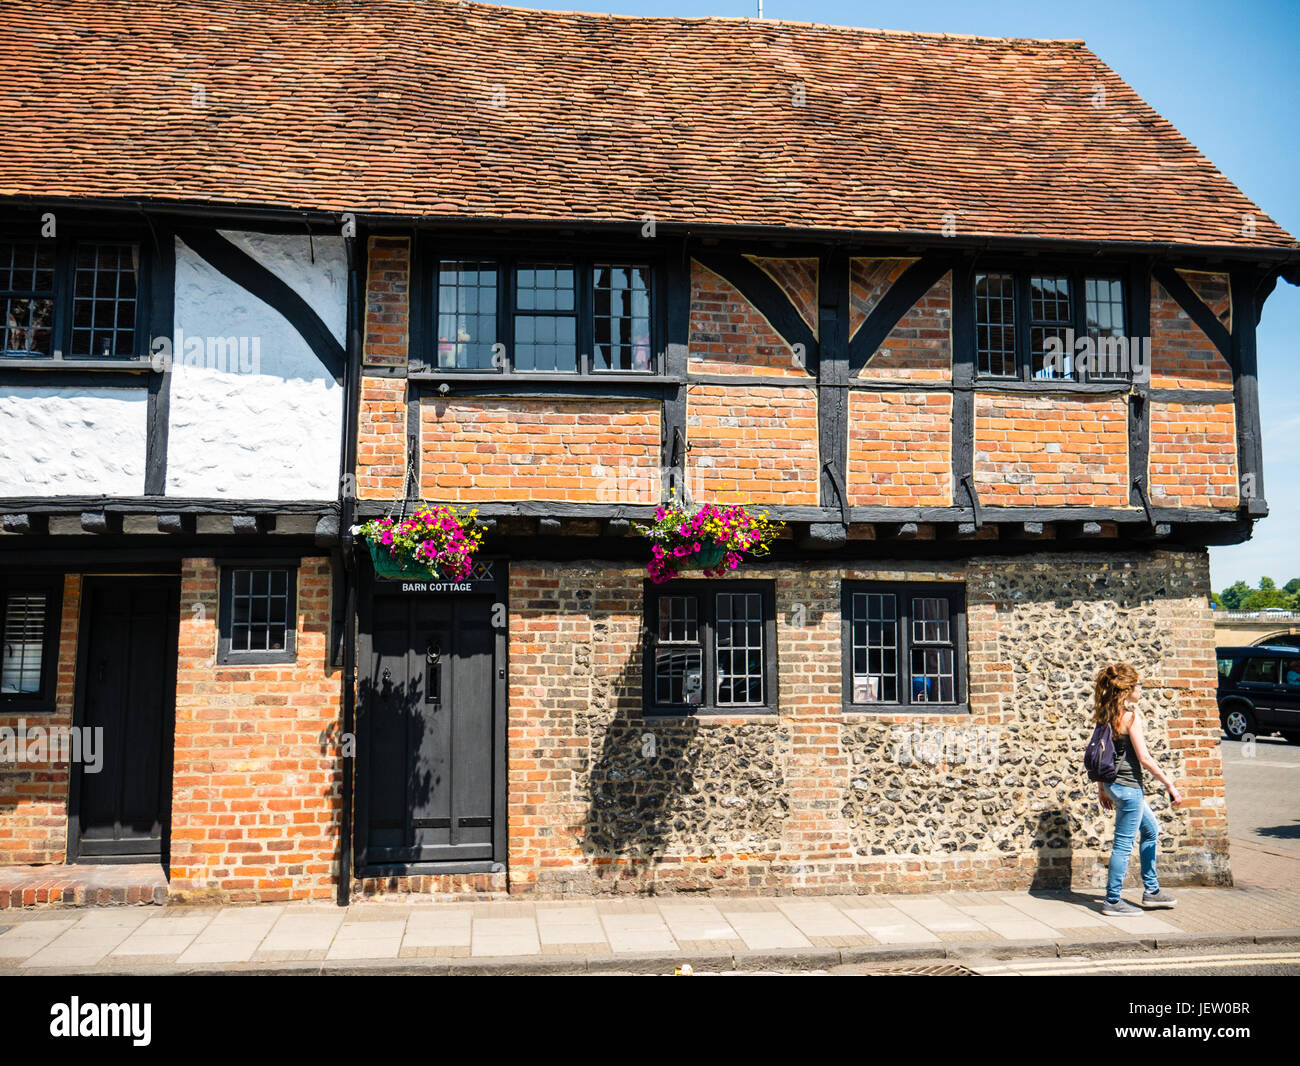 The Barn Cottage, Tudor Building, Henley-on-Thames, England - Stock Image